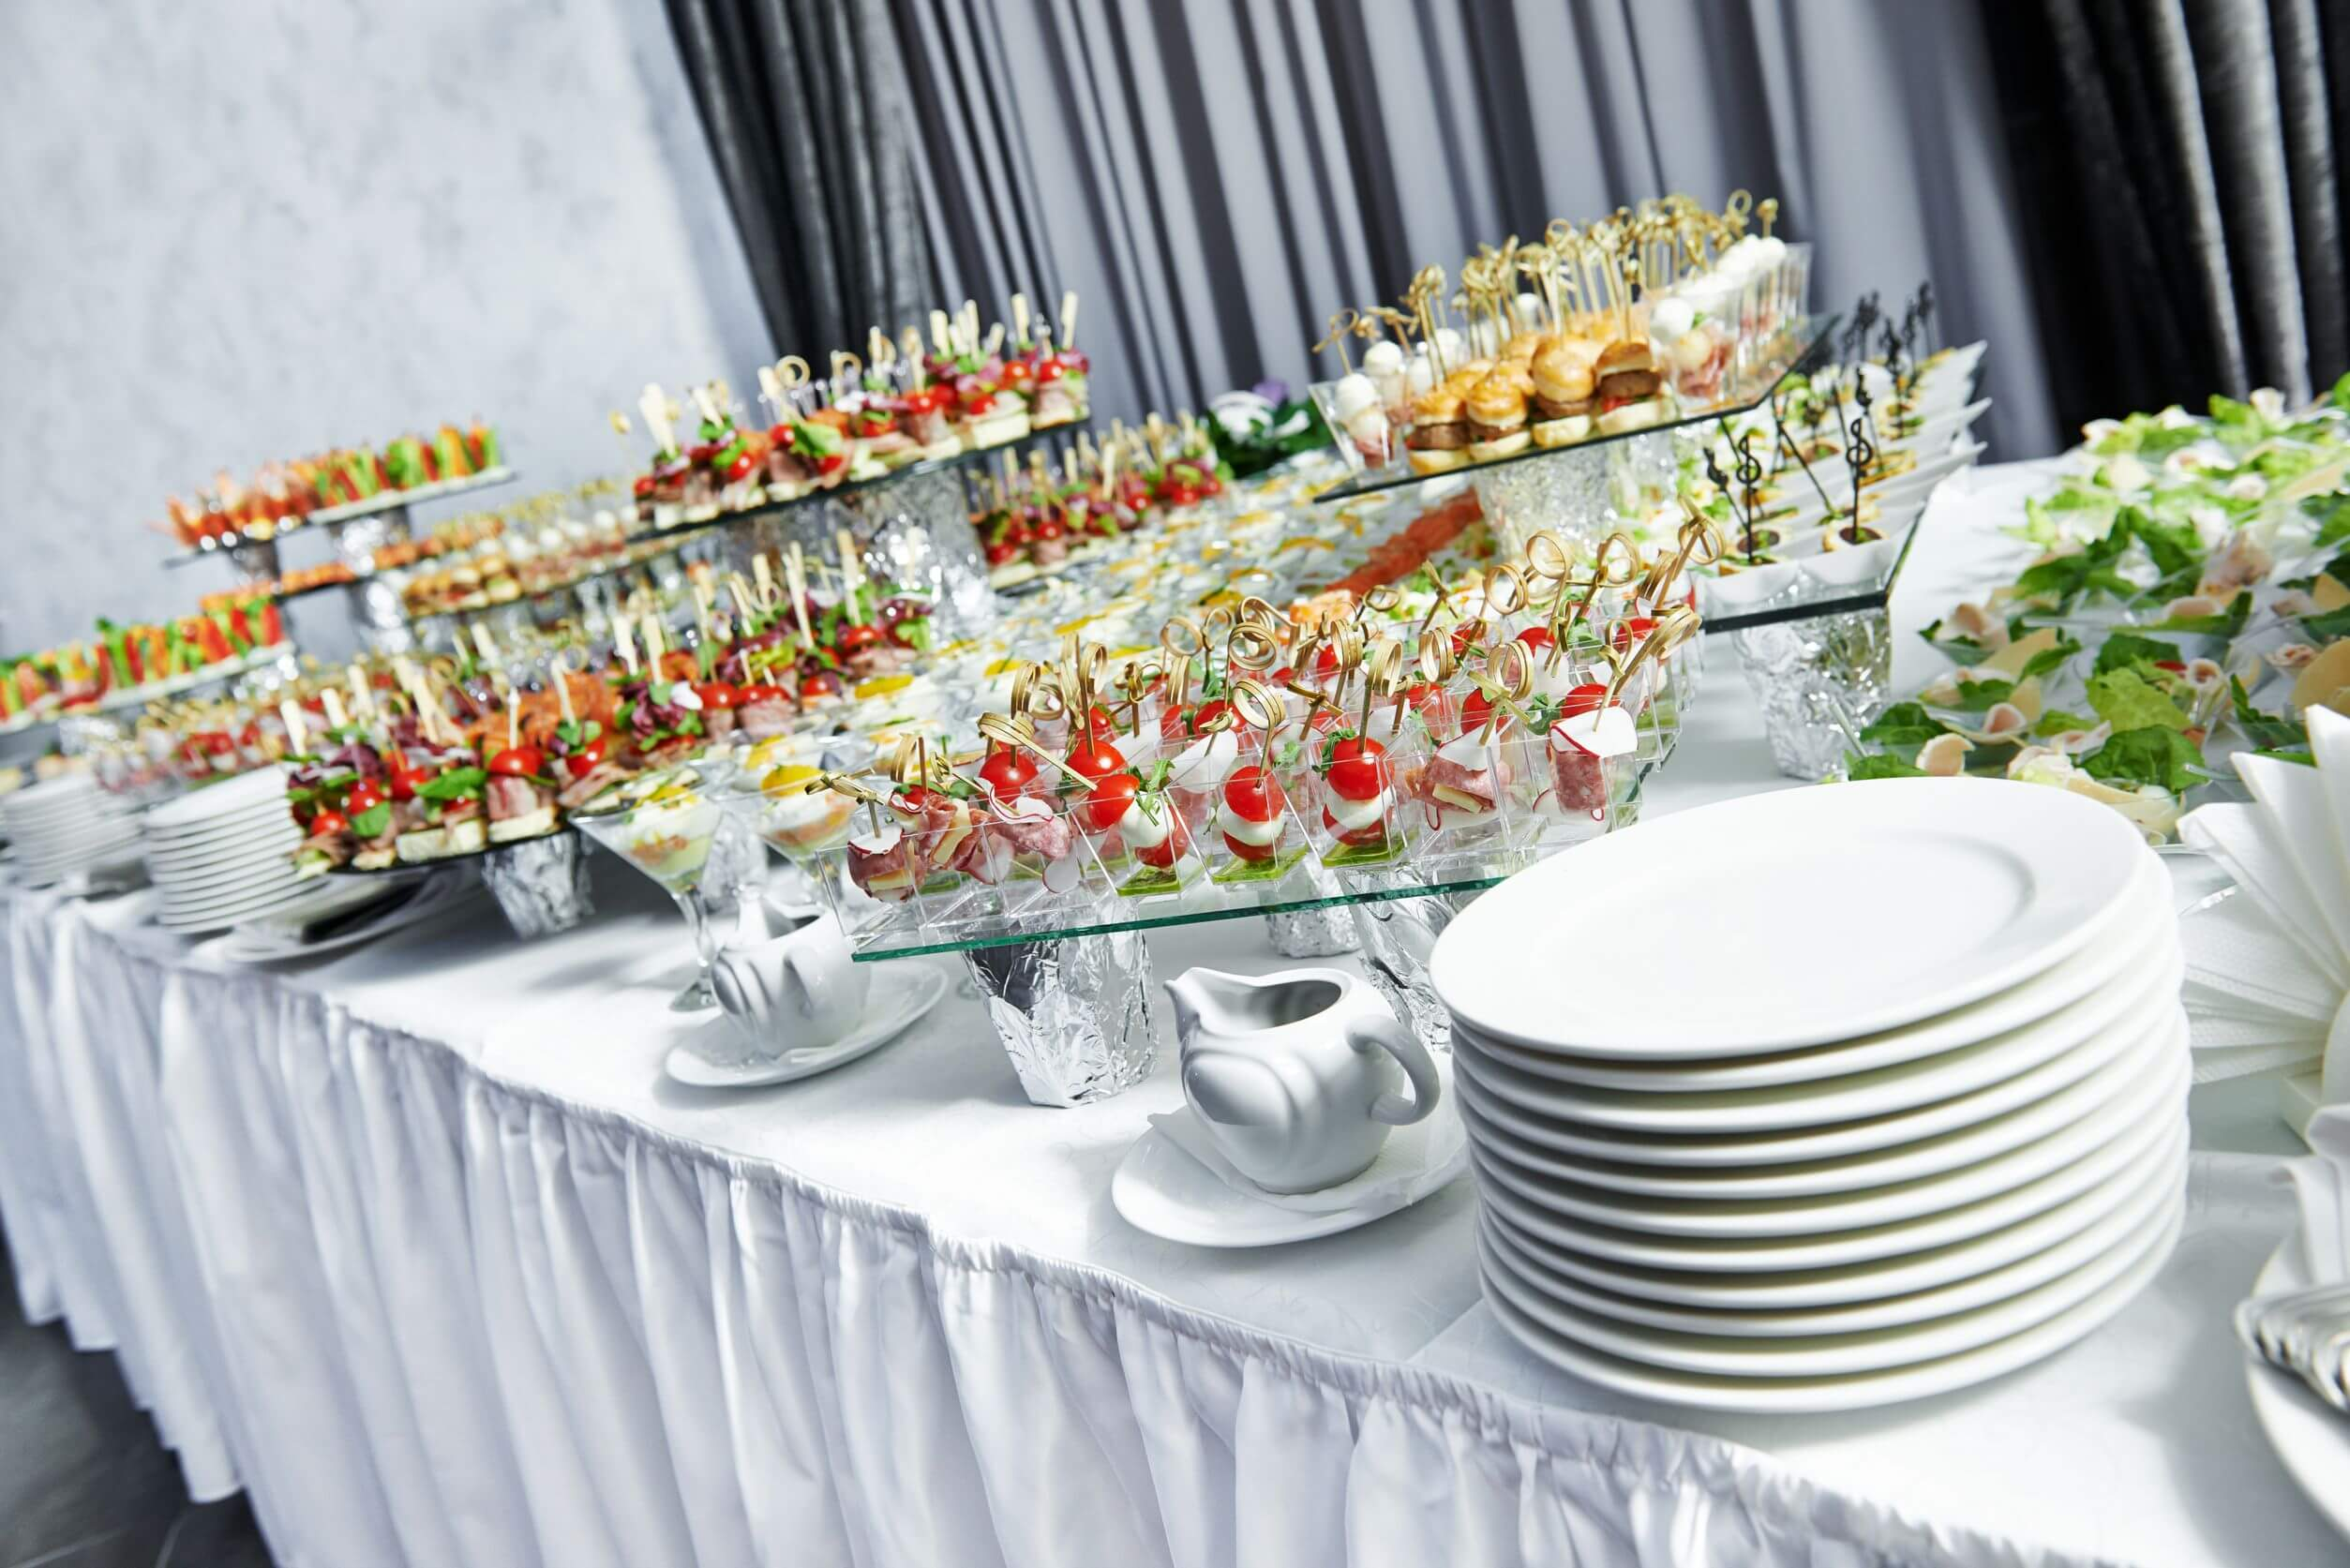 buffet catering for wedding with finger food at reception party